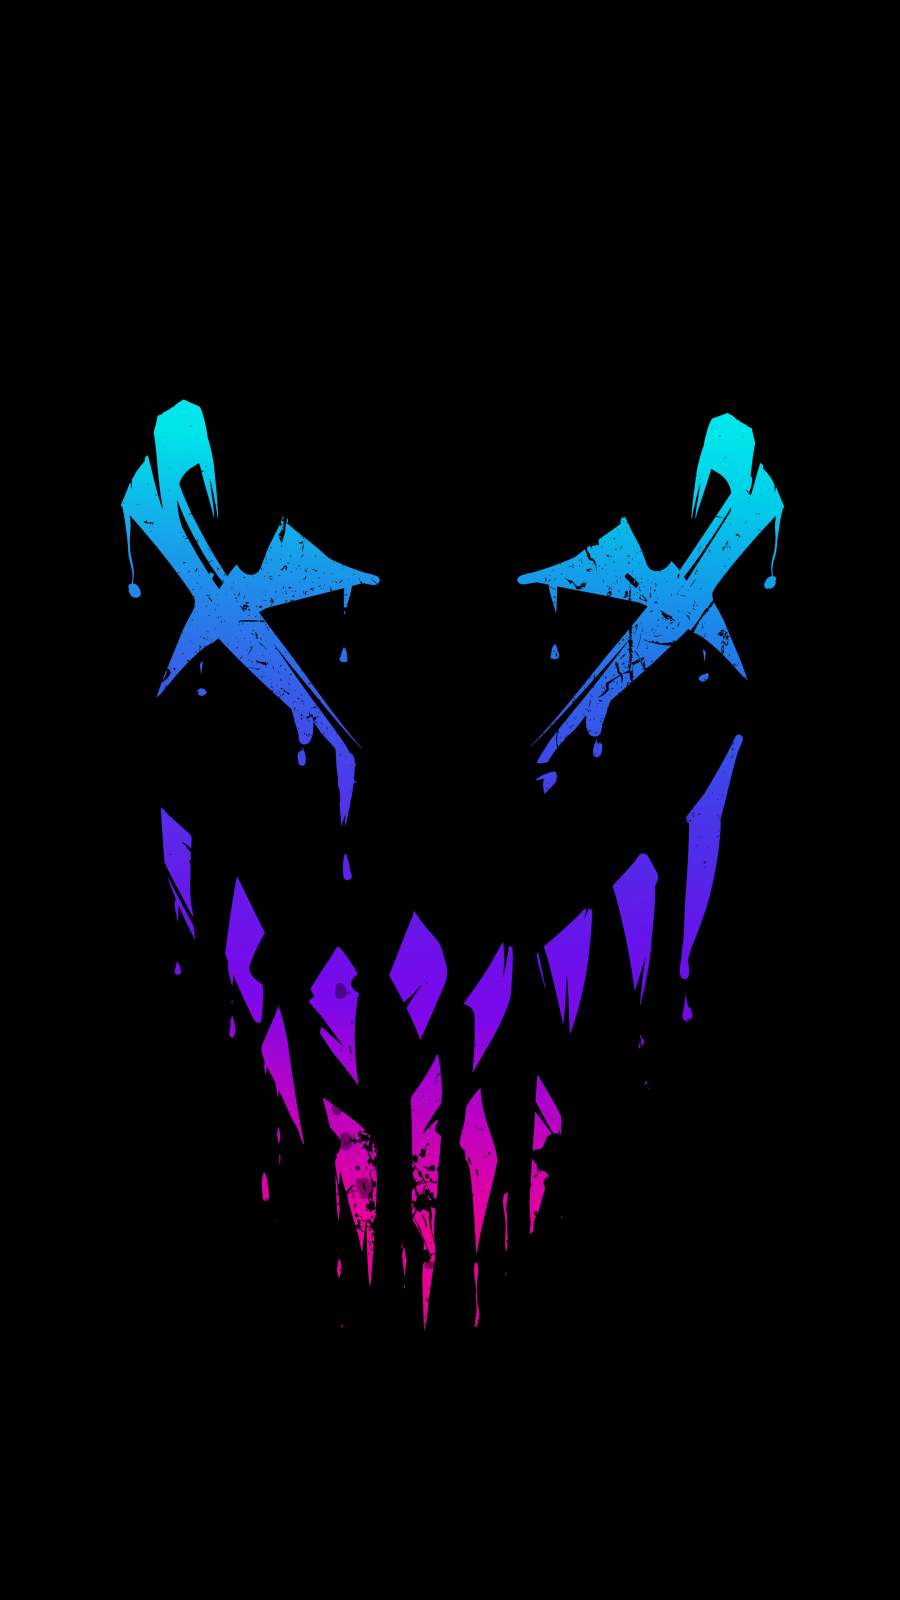 Venom Face Amoled iPhone Wallpaper